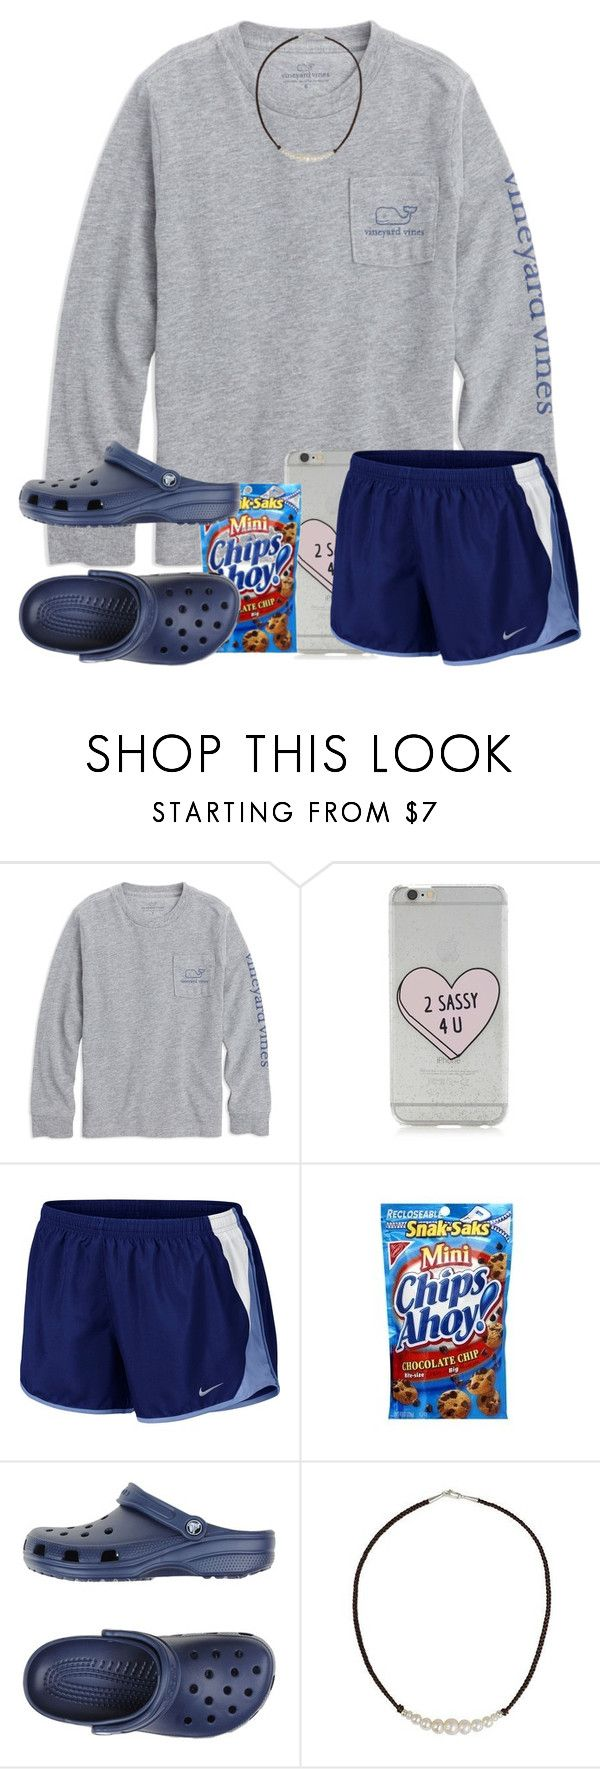 """crocs rock!! #Draft"" by arieannahicks ❤ liked on Polyvore featuring Forever 21, NIKE, Crocs and NOVICA"